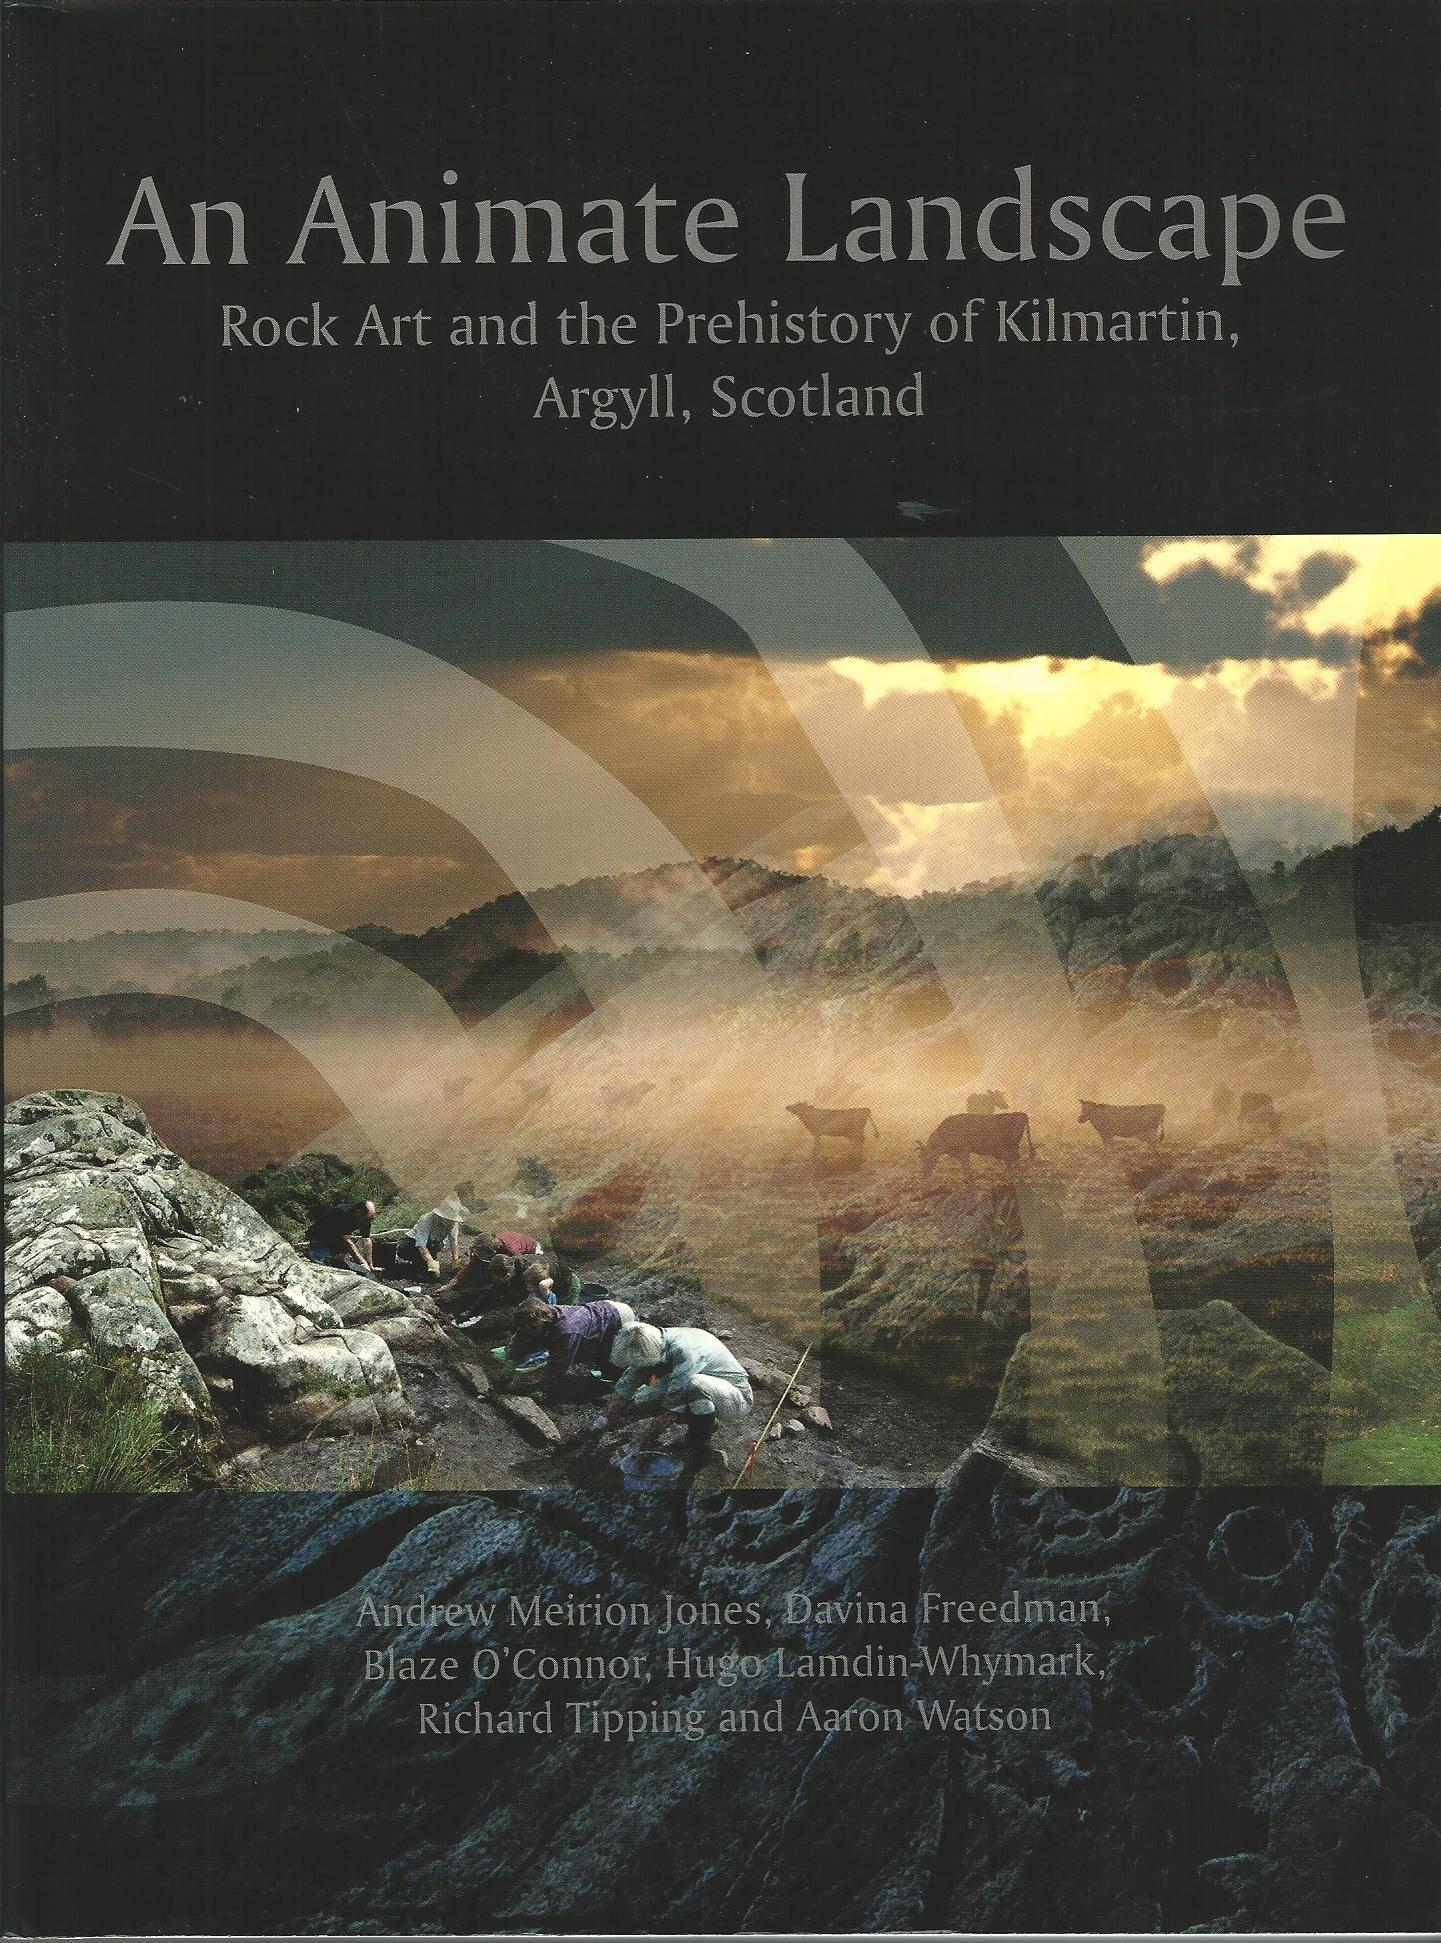 Image for An Animate Landscape: Rock Art and the Prehistory of Kilmartin, Argyll, Scotland